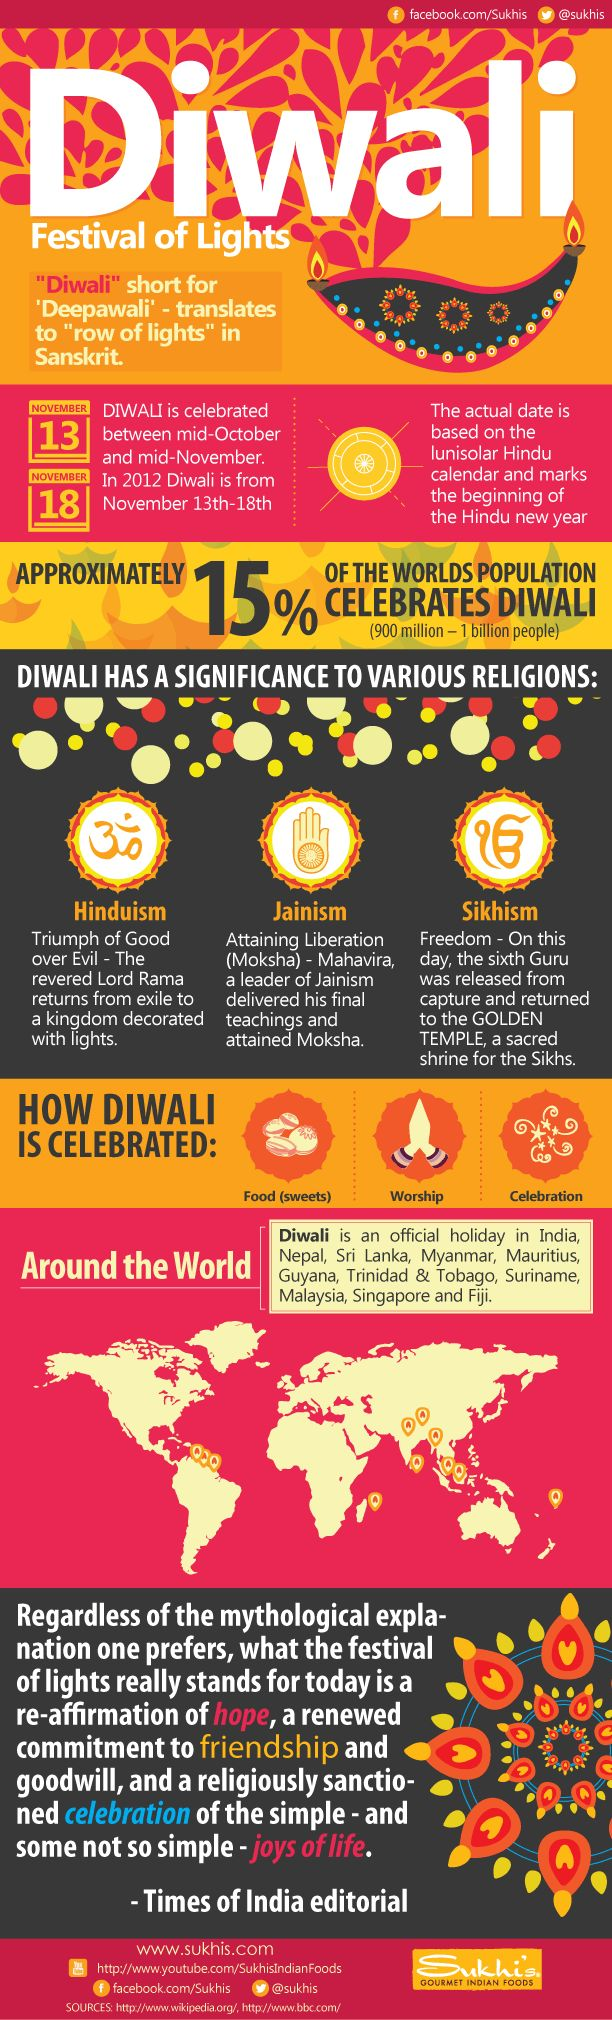 15 must see happy diwali pins hindu festival of lights diwali dutchess outreach would like to wish our hindu supporters a happy diwali short for deepavali this is a colourful festival celebrating the triumph of good